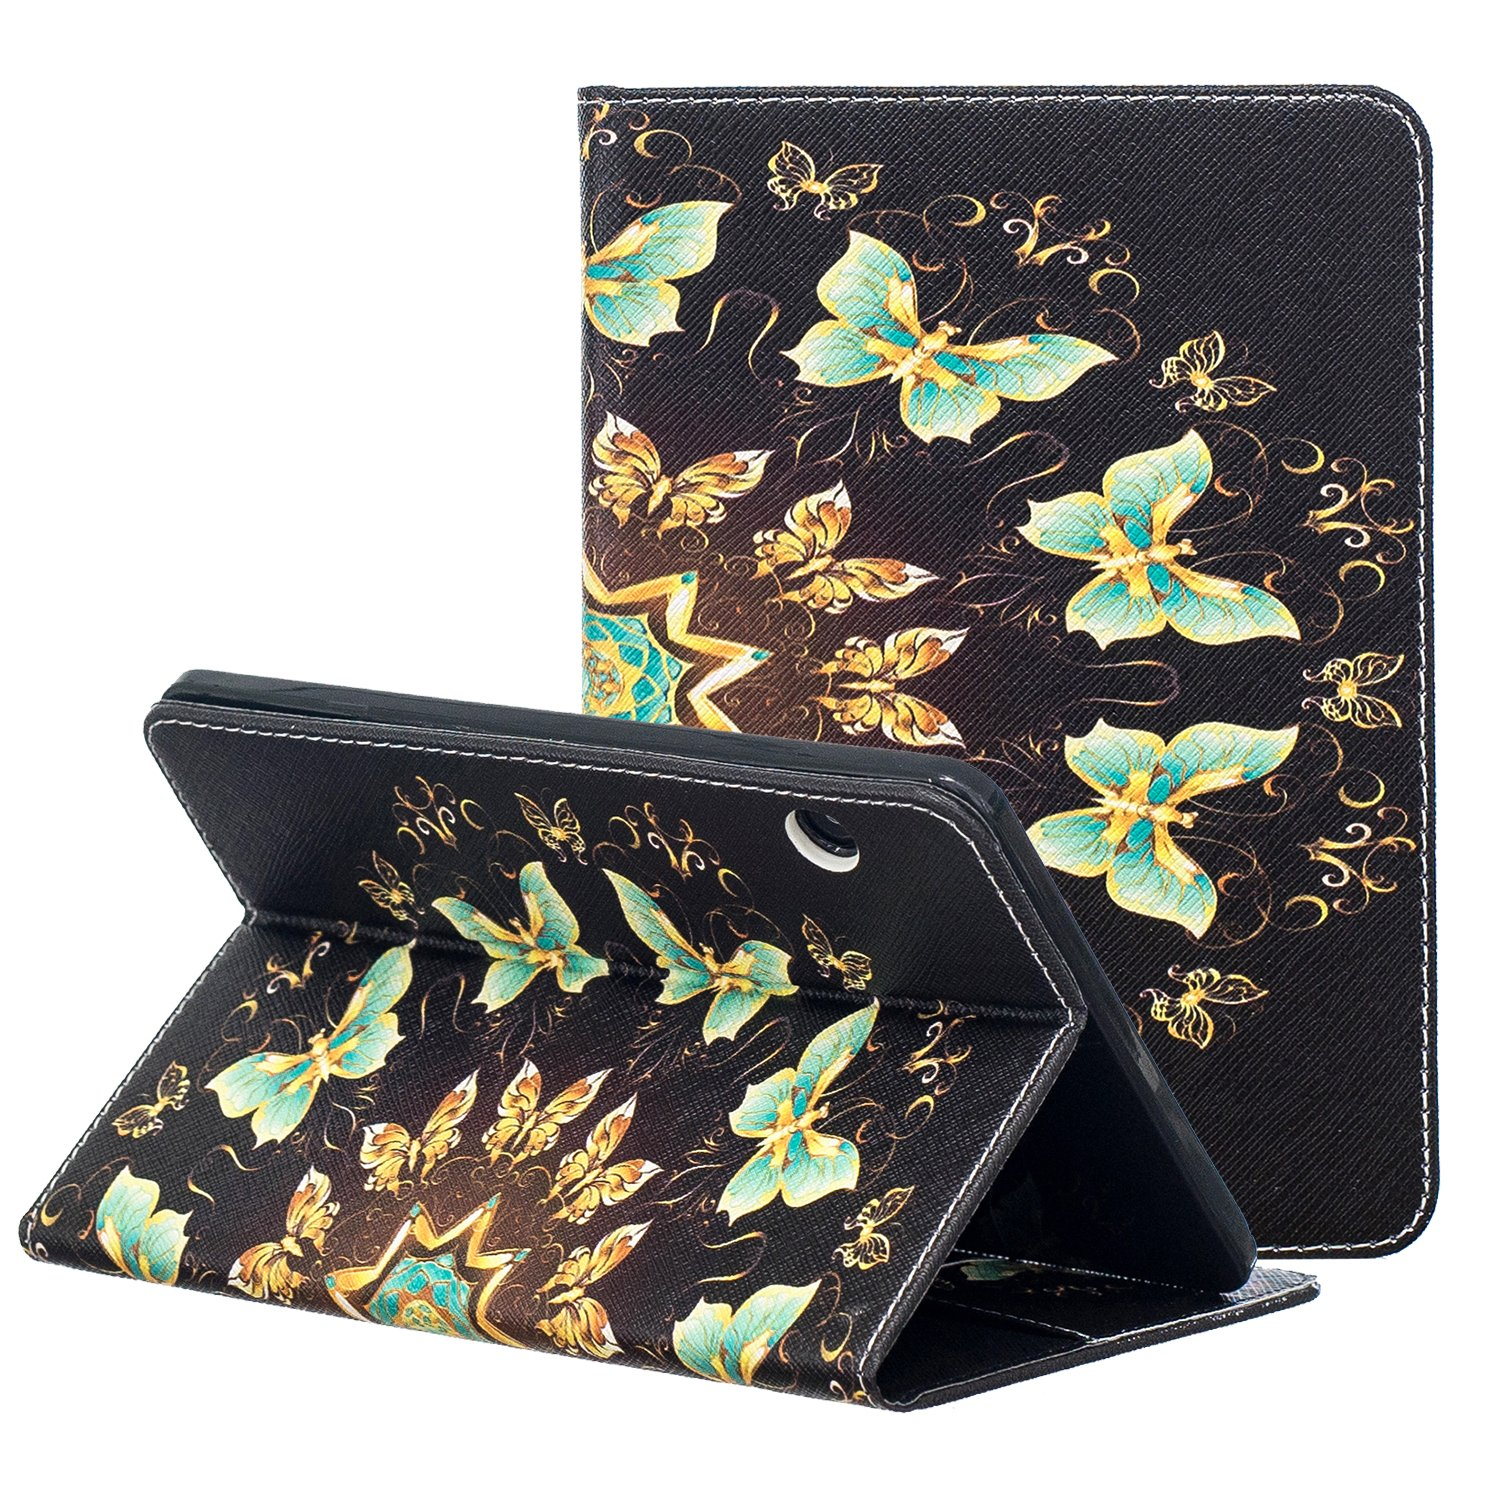 Kindle Voyage E-reader Case, ZAOX Colorful Painting Leather Stand Flip Folio Card Holder Shell Slim Wallet Case Auto Wake/Sleep Smart Protective Cover for Amazon Kindle Voyage 2014 (Green Butterfly)